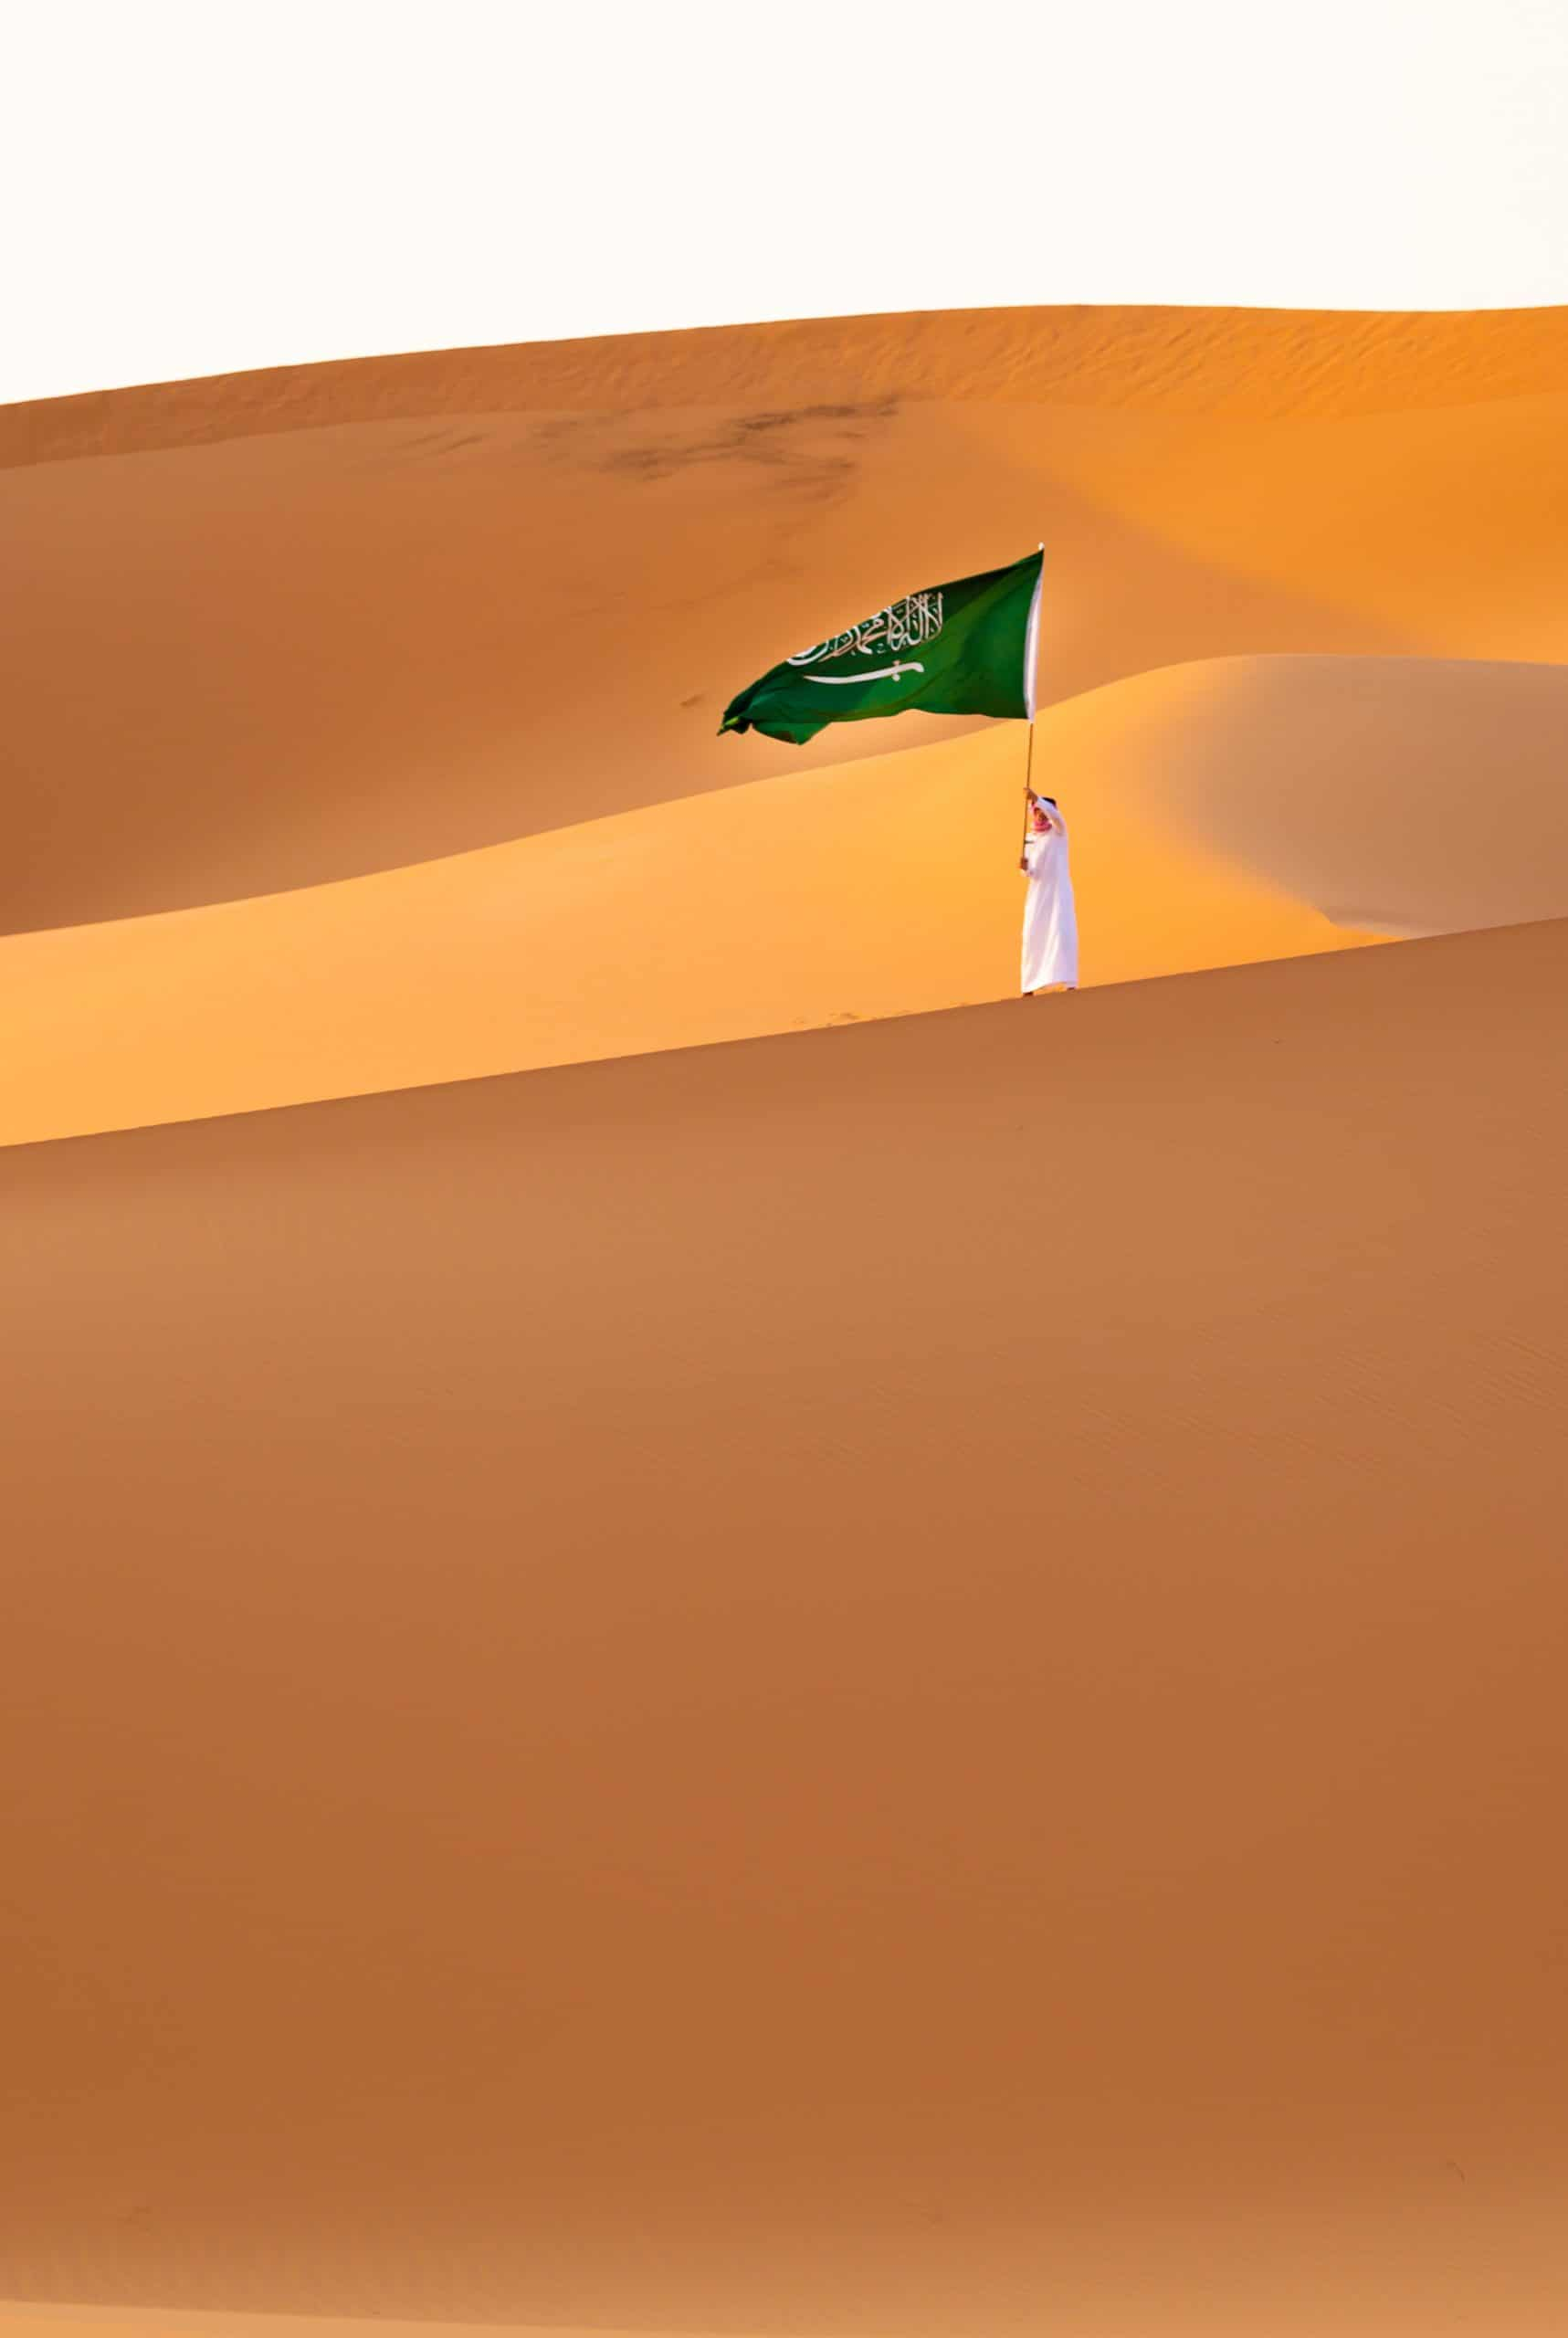 What was Saudi arabia previously known as?